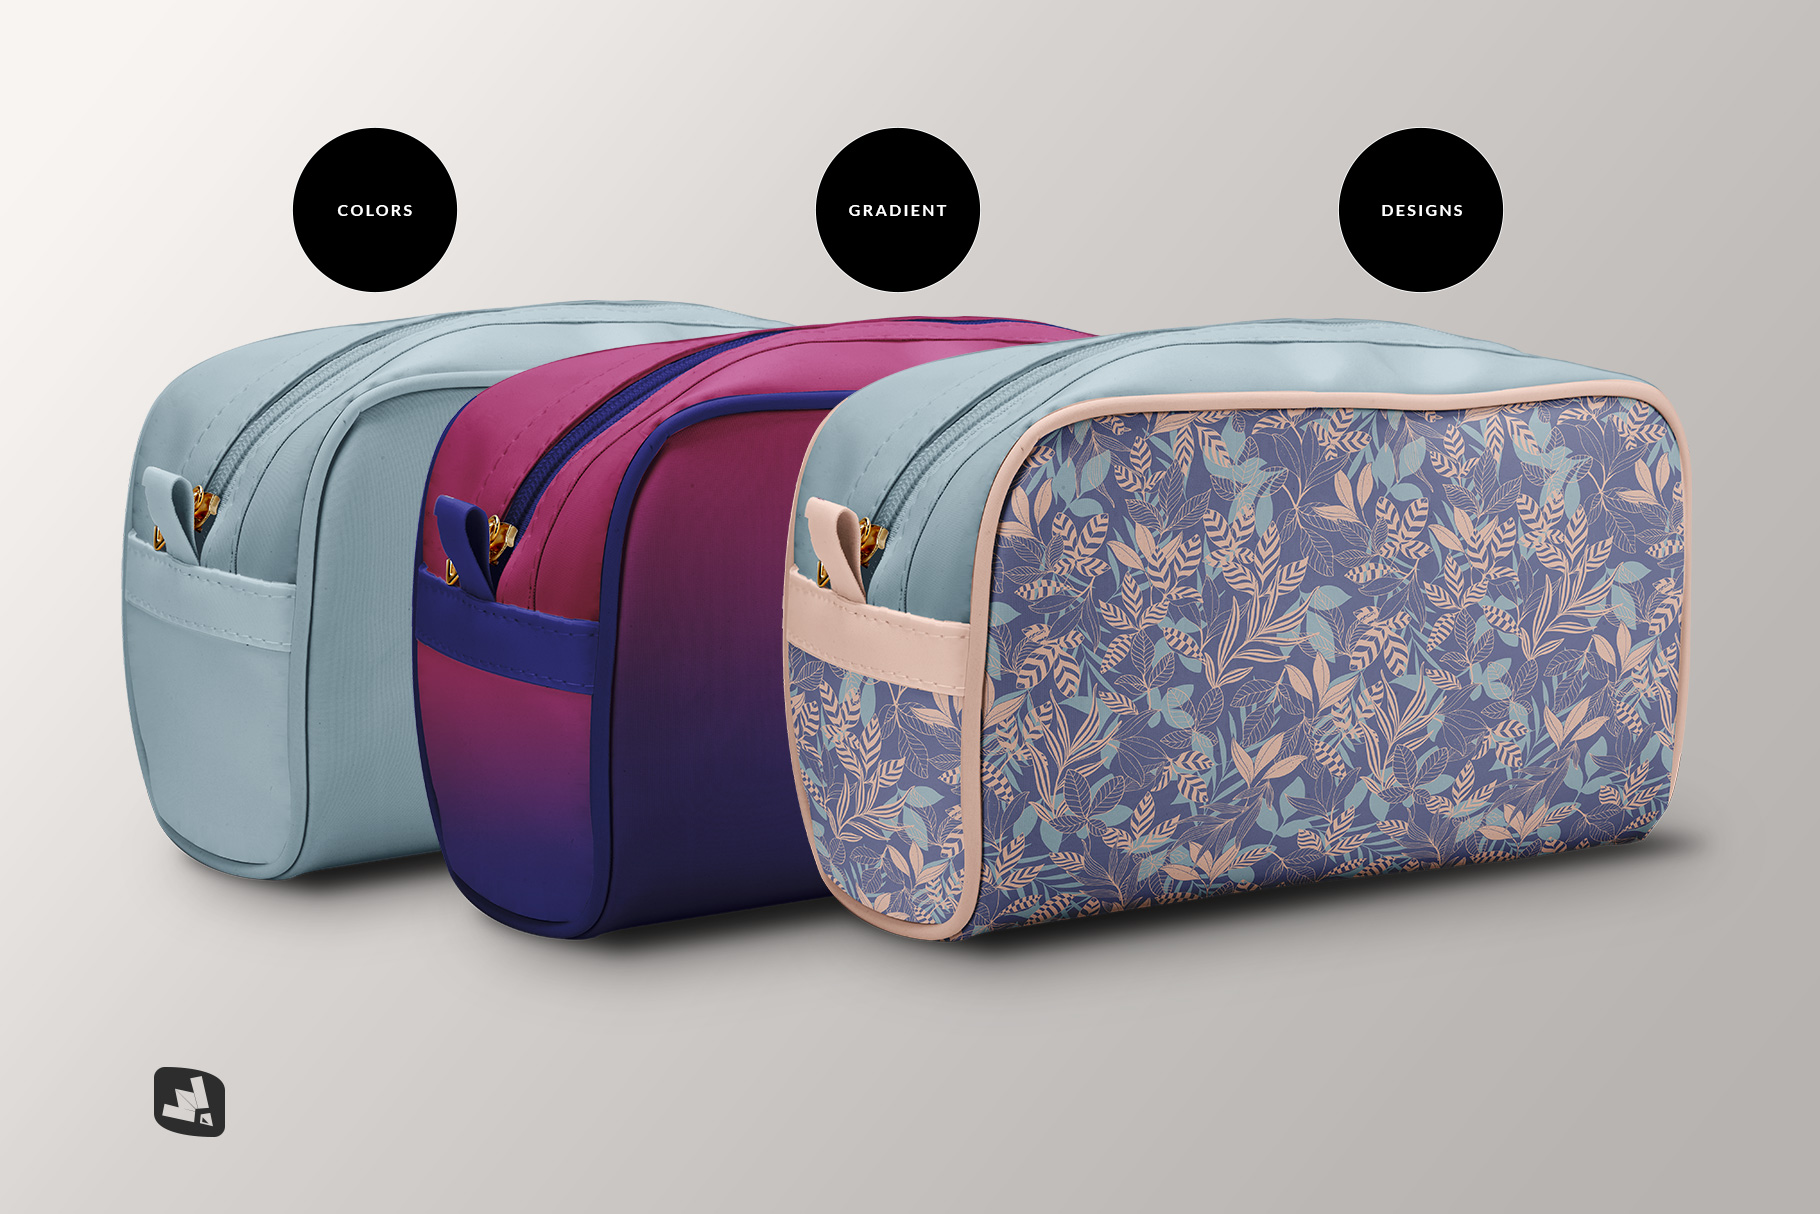 types of the front view travel makeup bag mockup